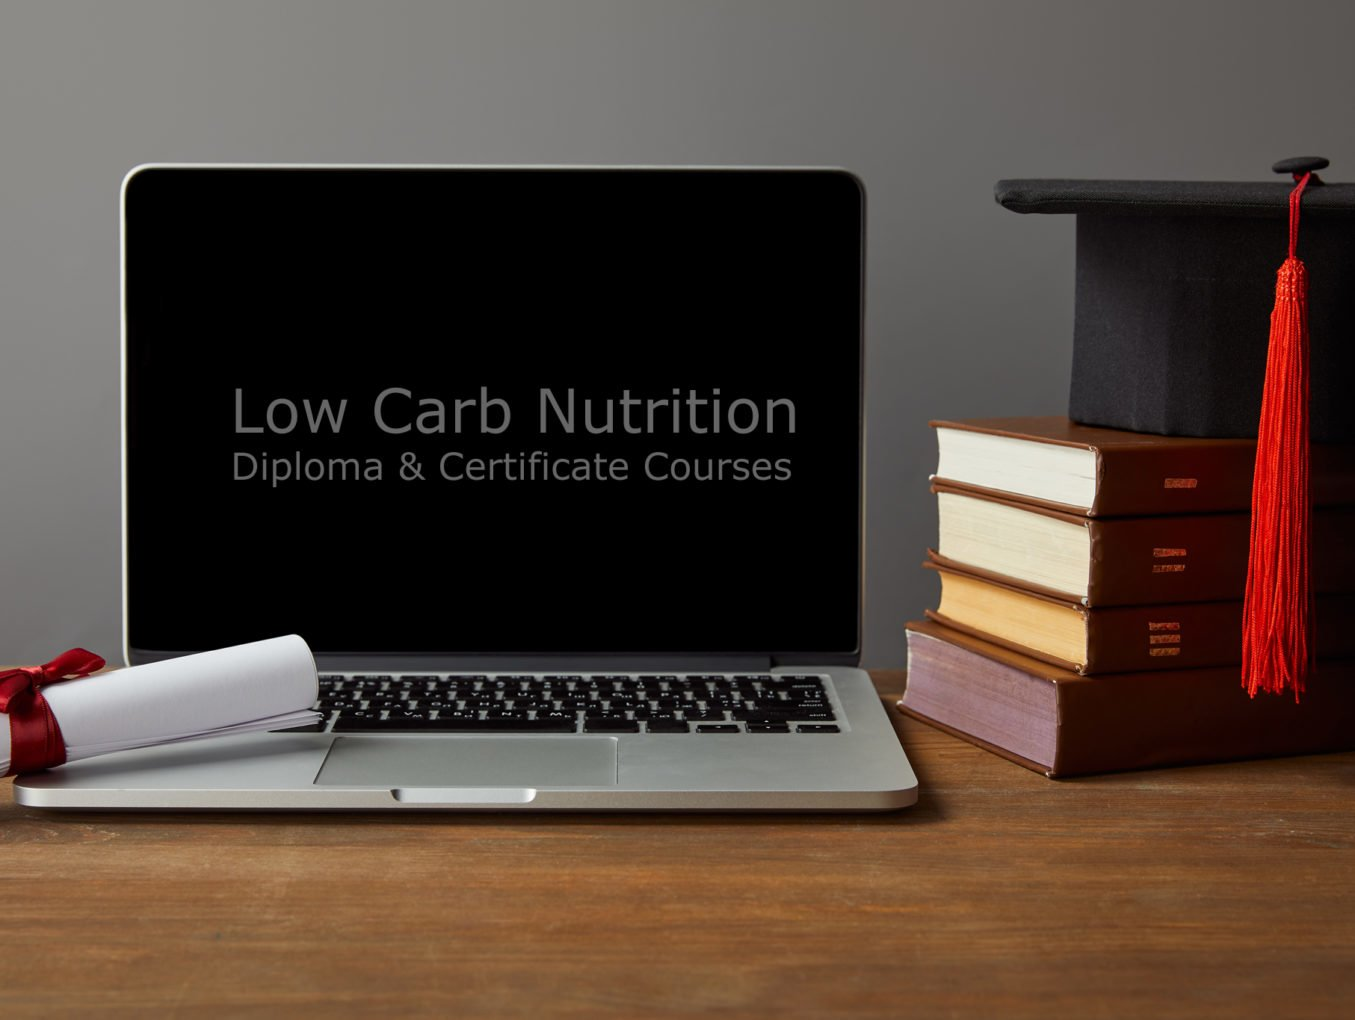 Low Carb Nutrition Diploma Course From Autonomous Institute In India